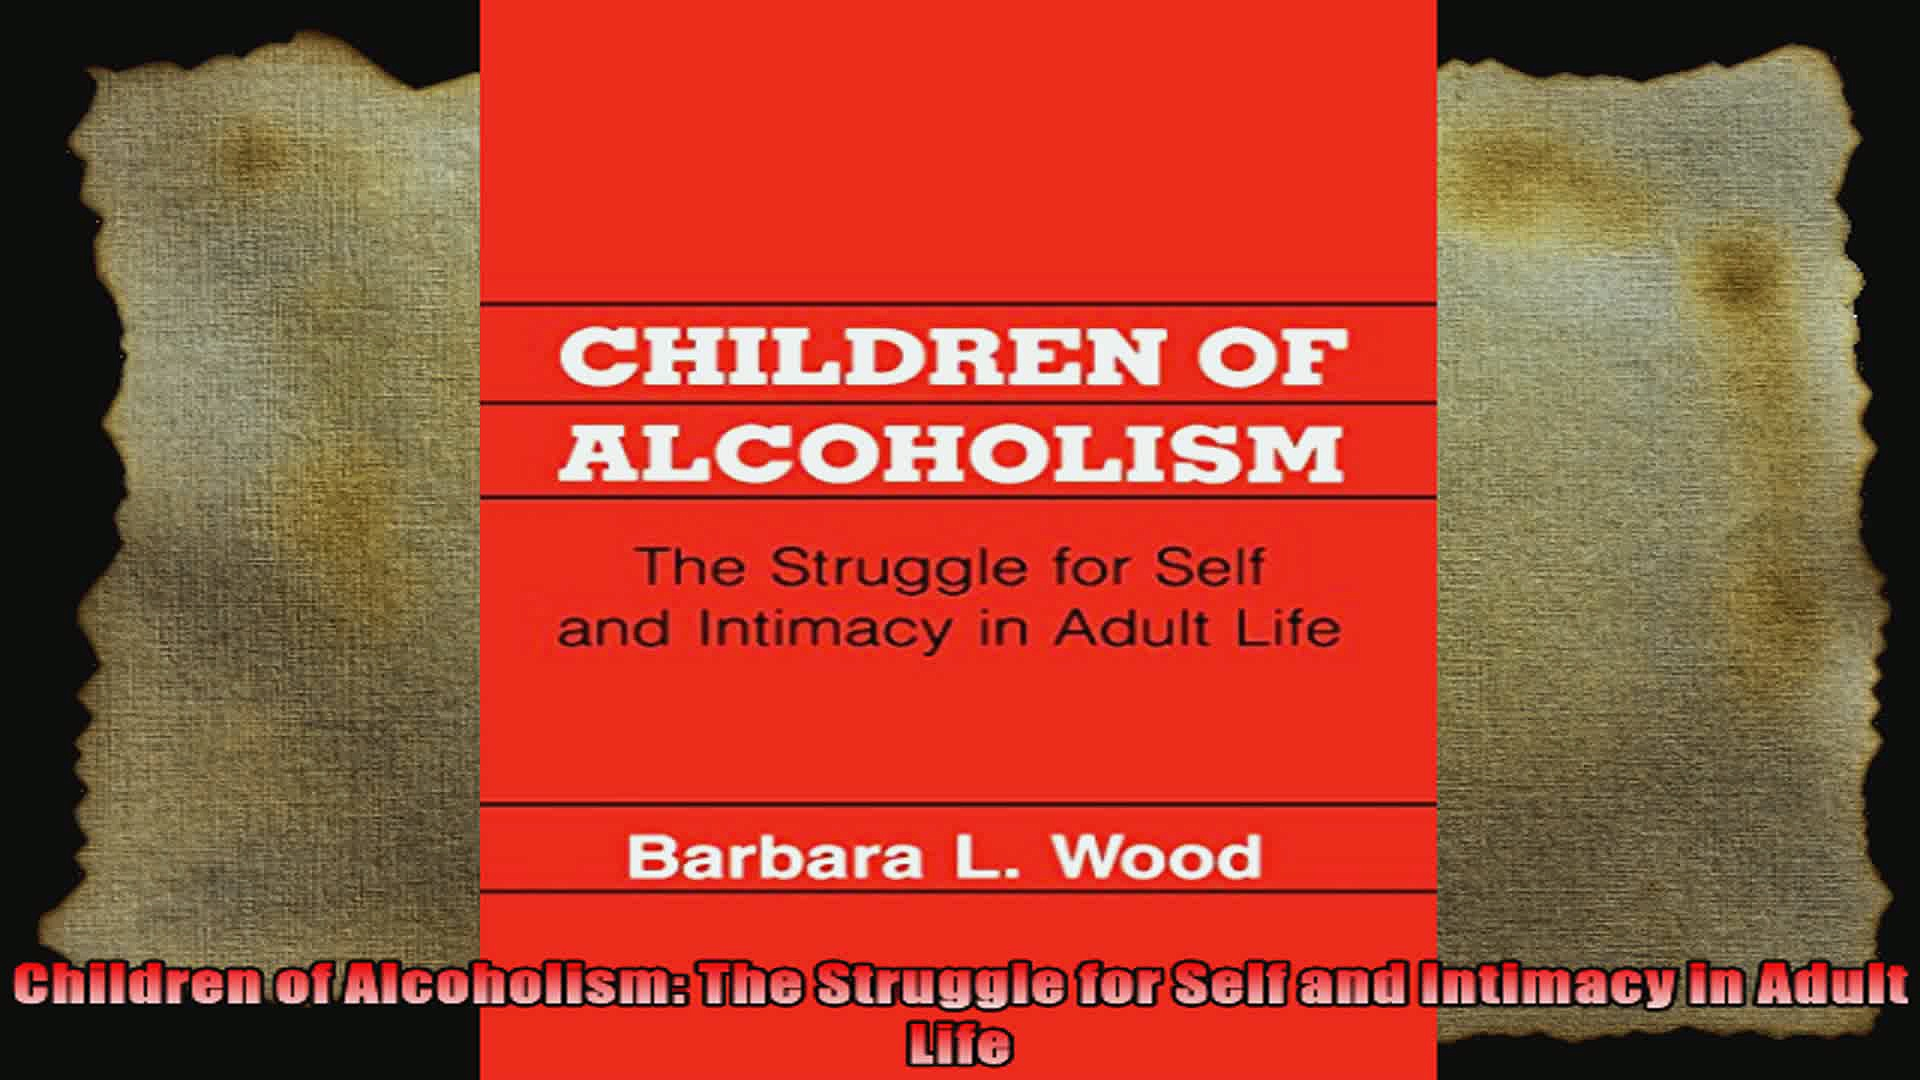 Children of Alcoholism The Struggle for Self and Intimacy in Adult Life